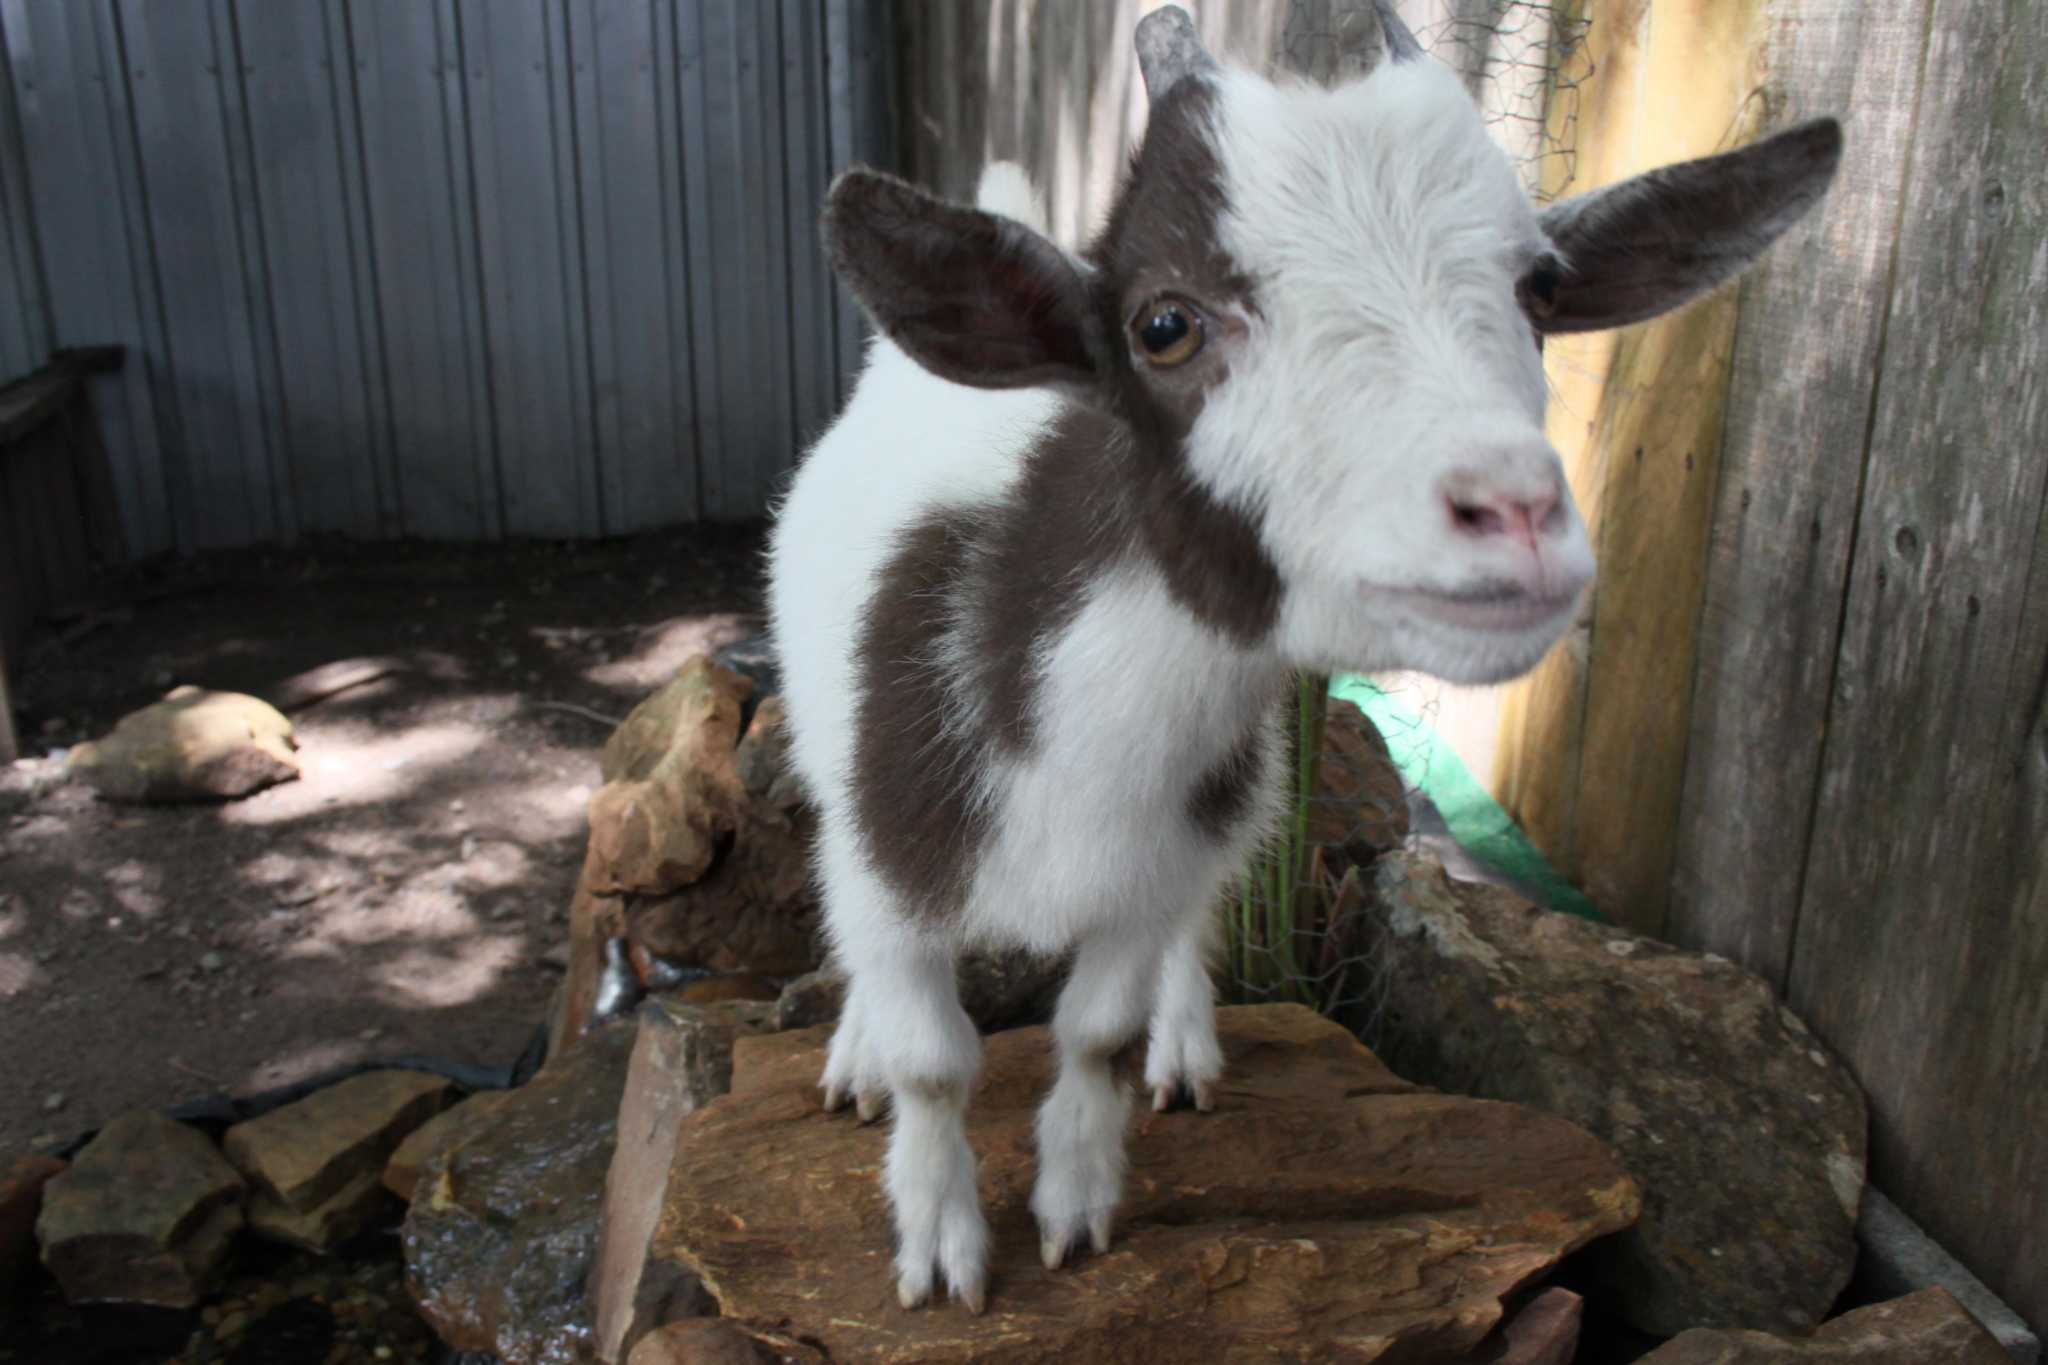 Pygmy goats in downtown Tomball may defy neighbors' attempts ... on maltese house plans, swine house plans, goat wagon plans, sheep hoop barn plans, goat housing plans, goat kidding pen plans, dog house plans, goat shelter plans, pygmy lamb, goat feeder plans, pigeon house plans, goat building plans, goat playground plans, snowy owl house plans, ostrich house plans, pygmy owls as pets, diy goat stanchion plans, chicken house plans, goat barn plans,